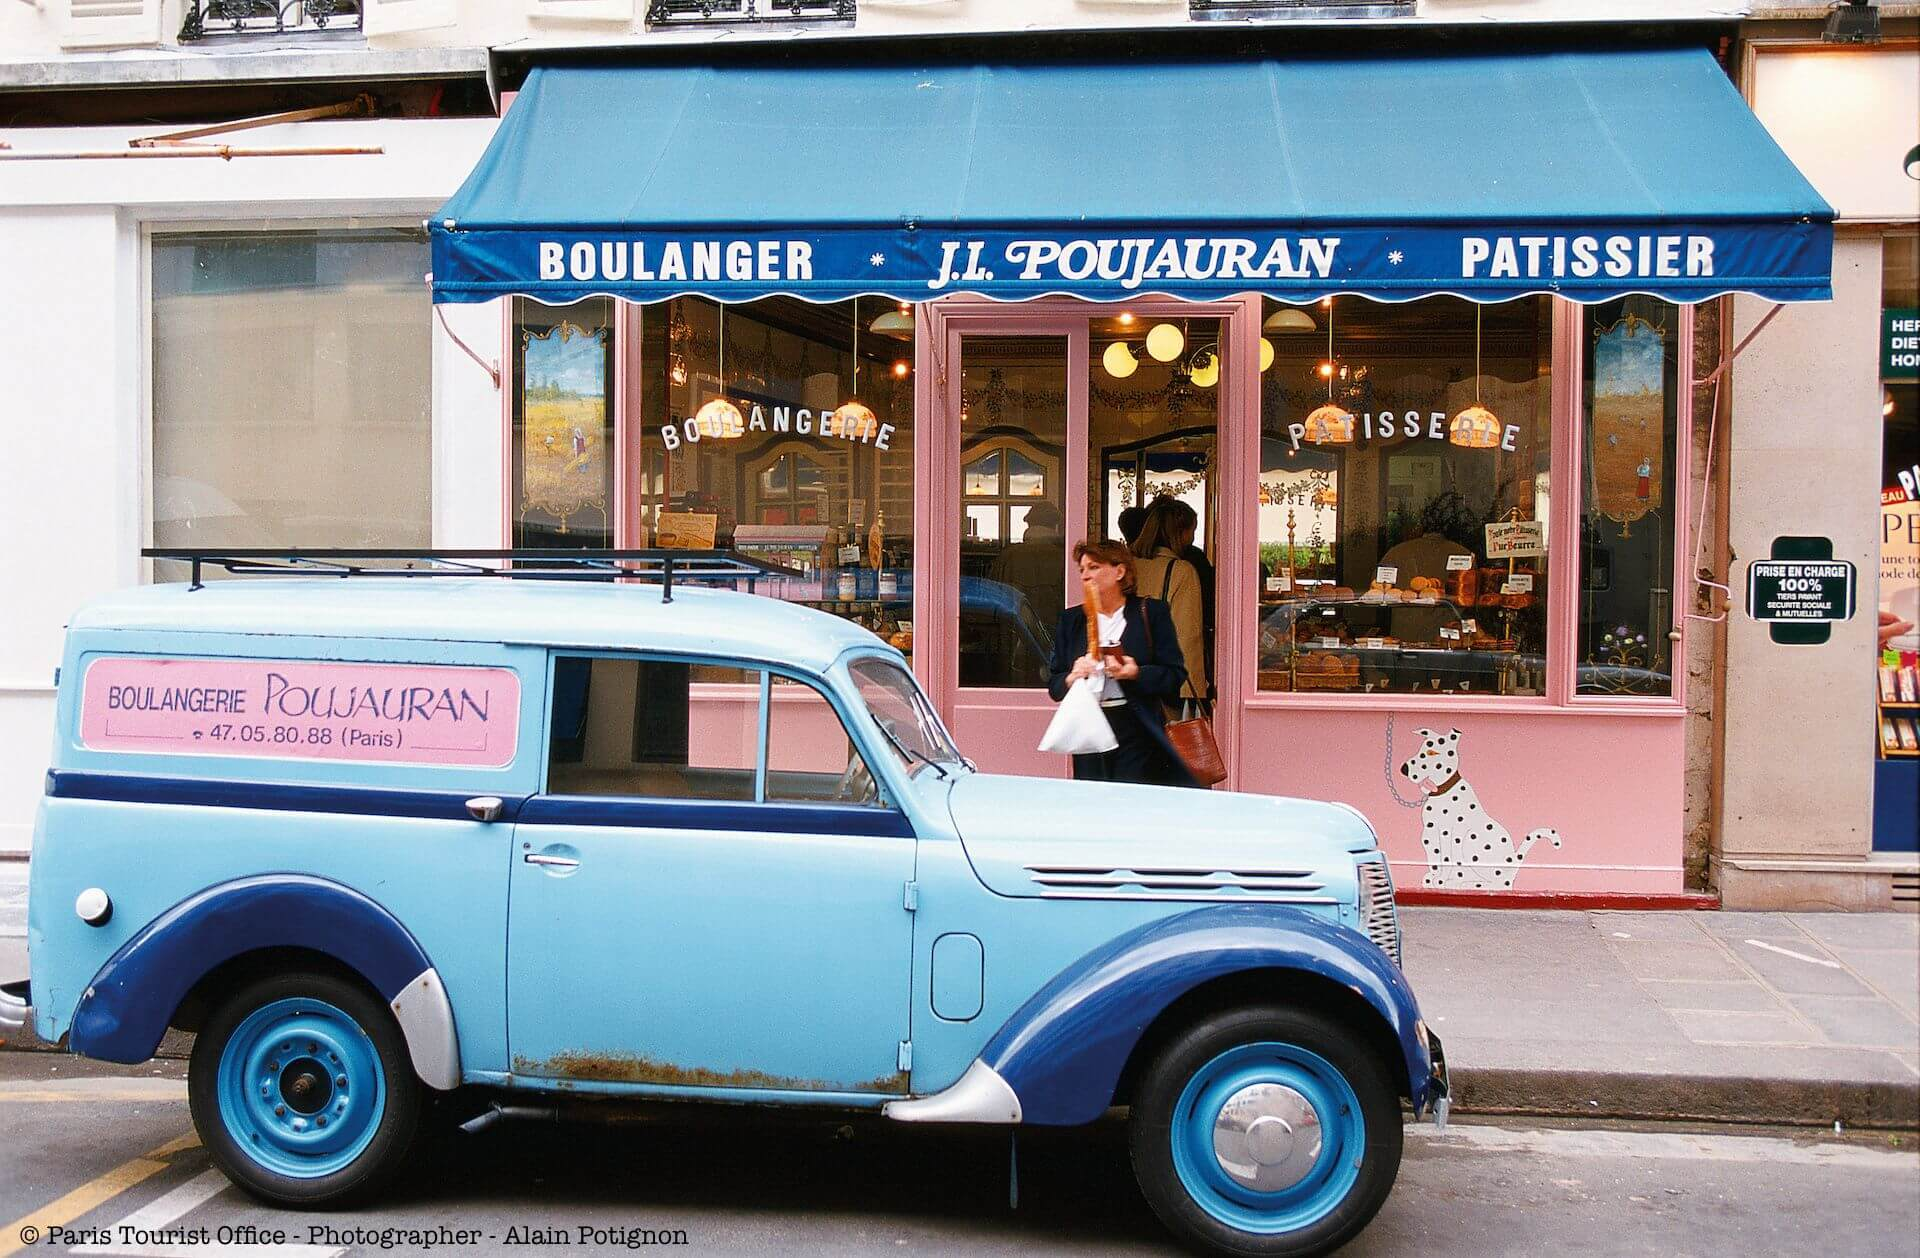 Bakery in the Invaildes District - Paris